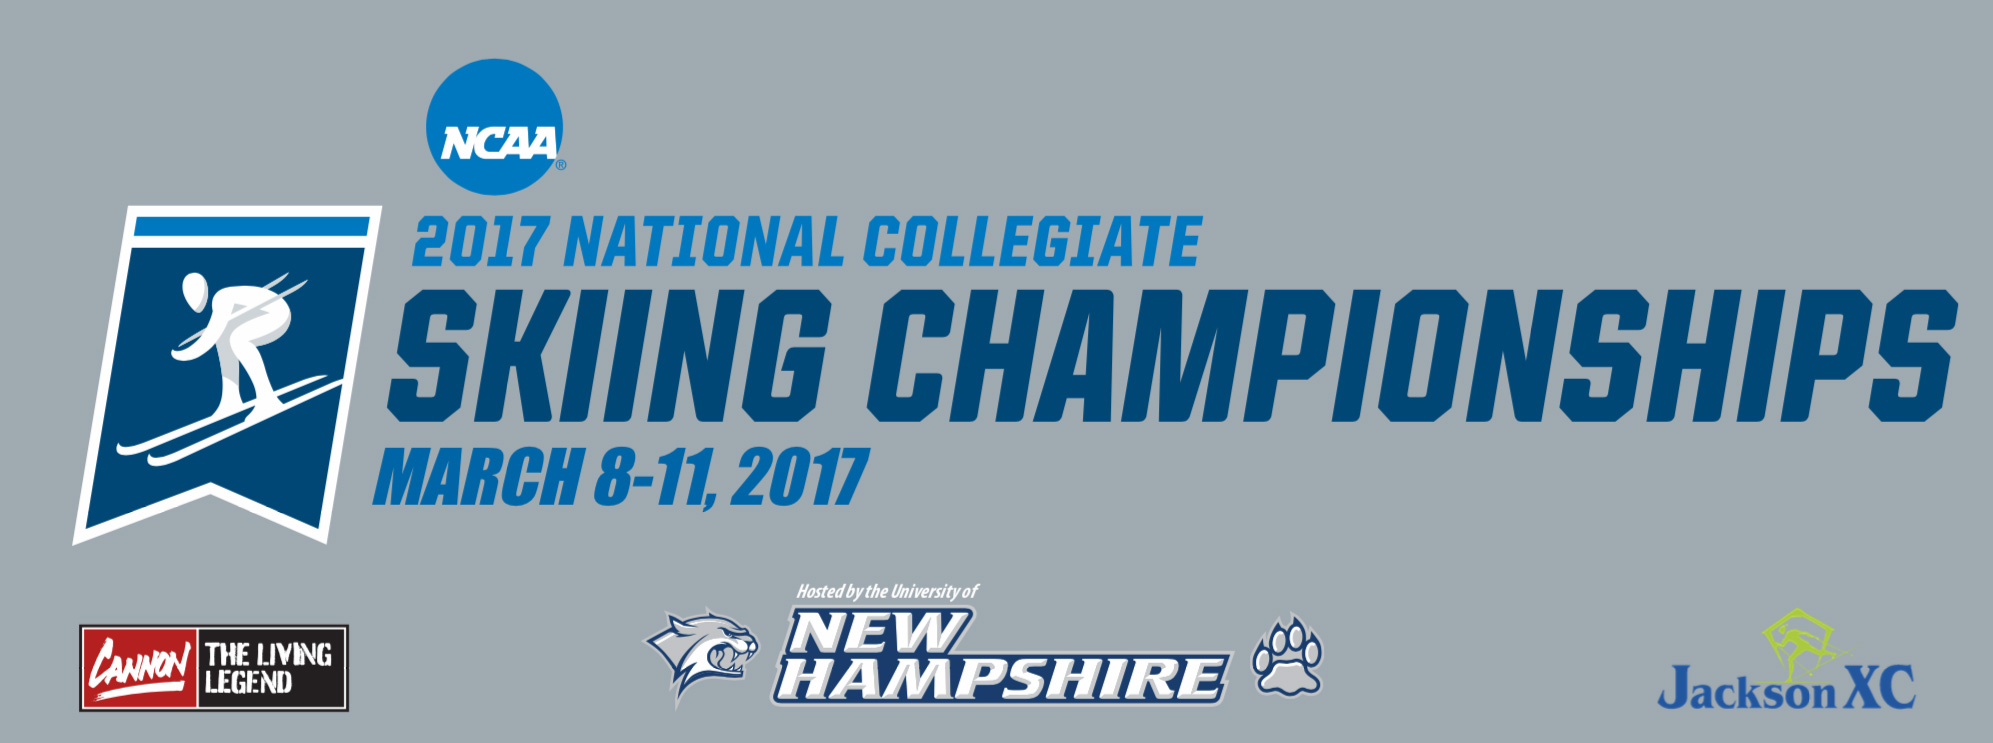 ncaa-nh-skking